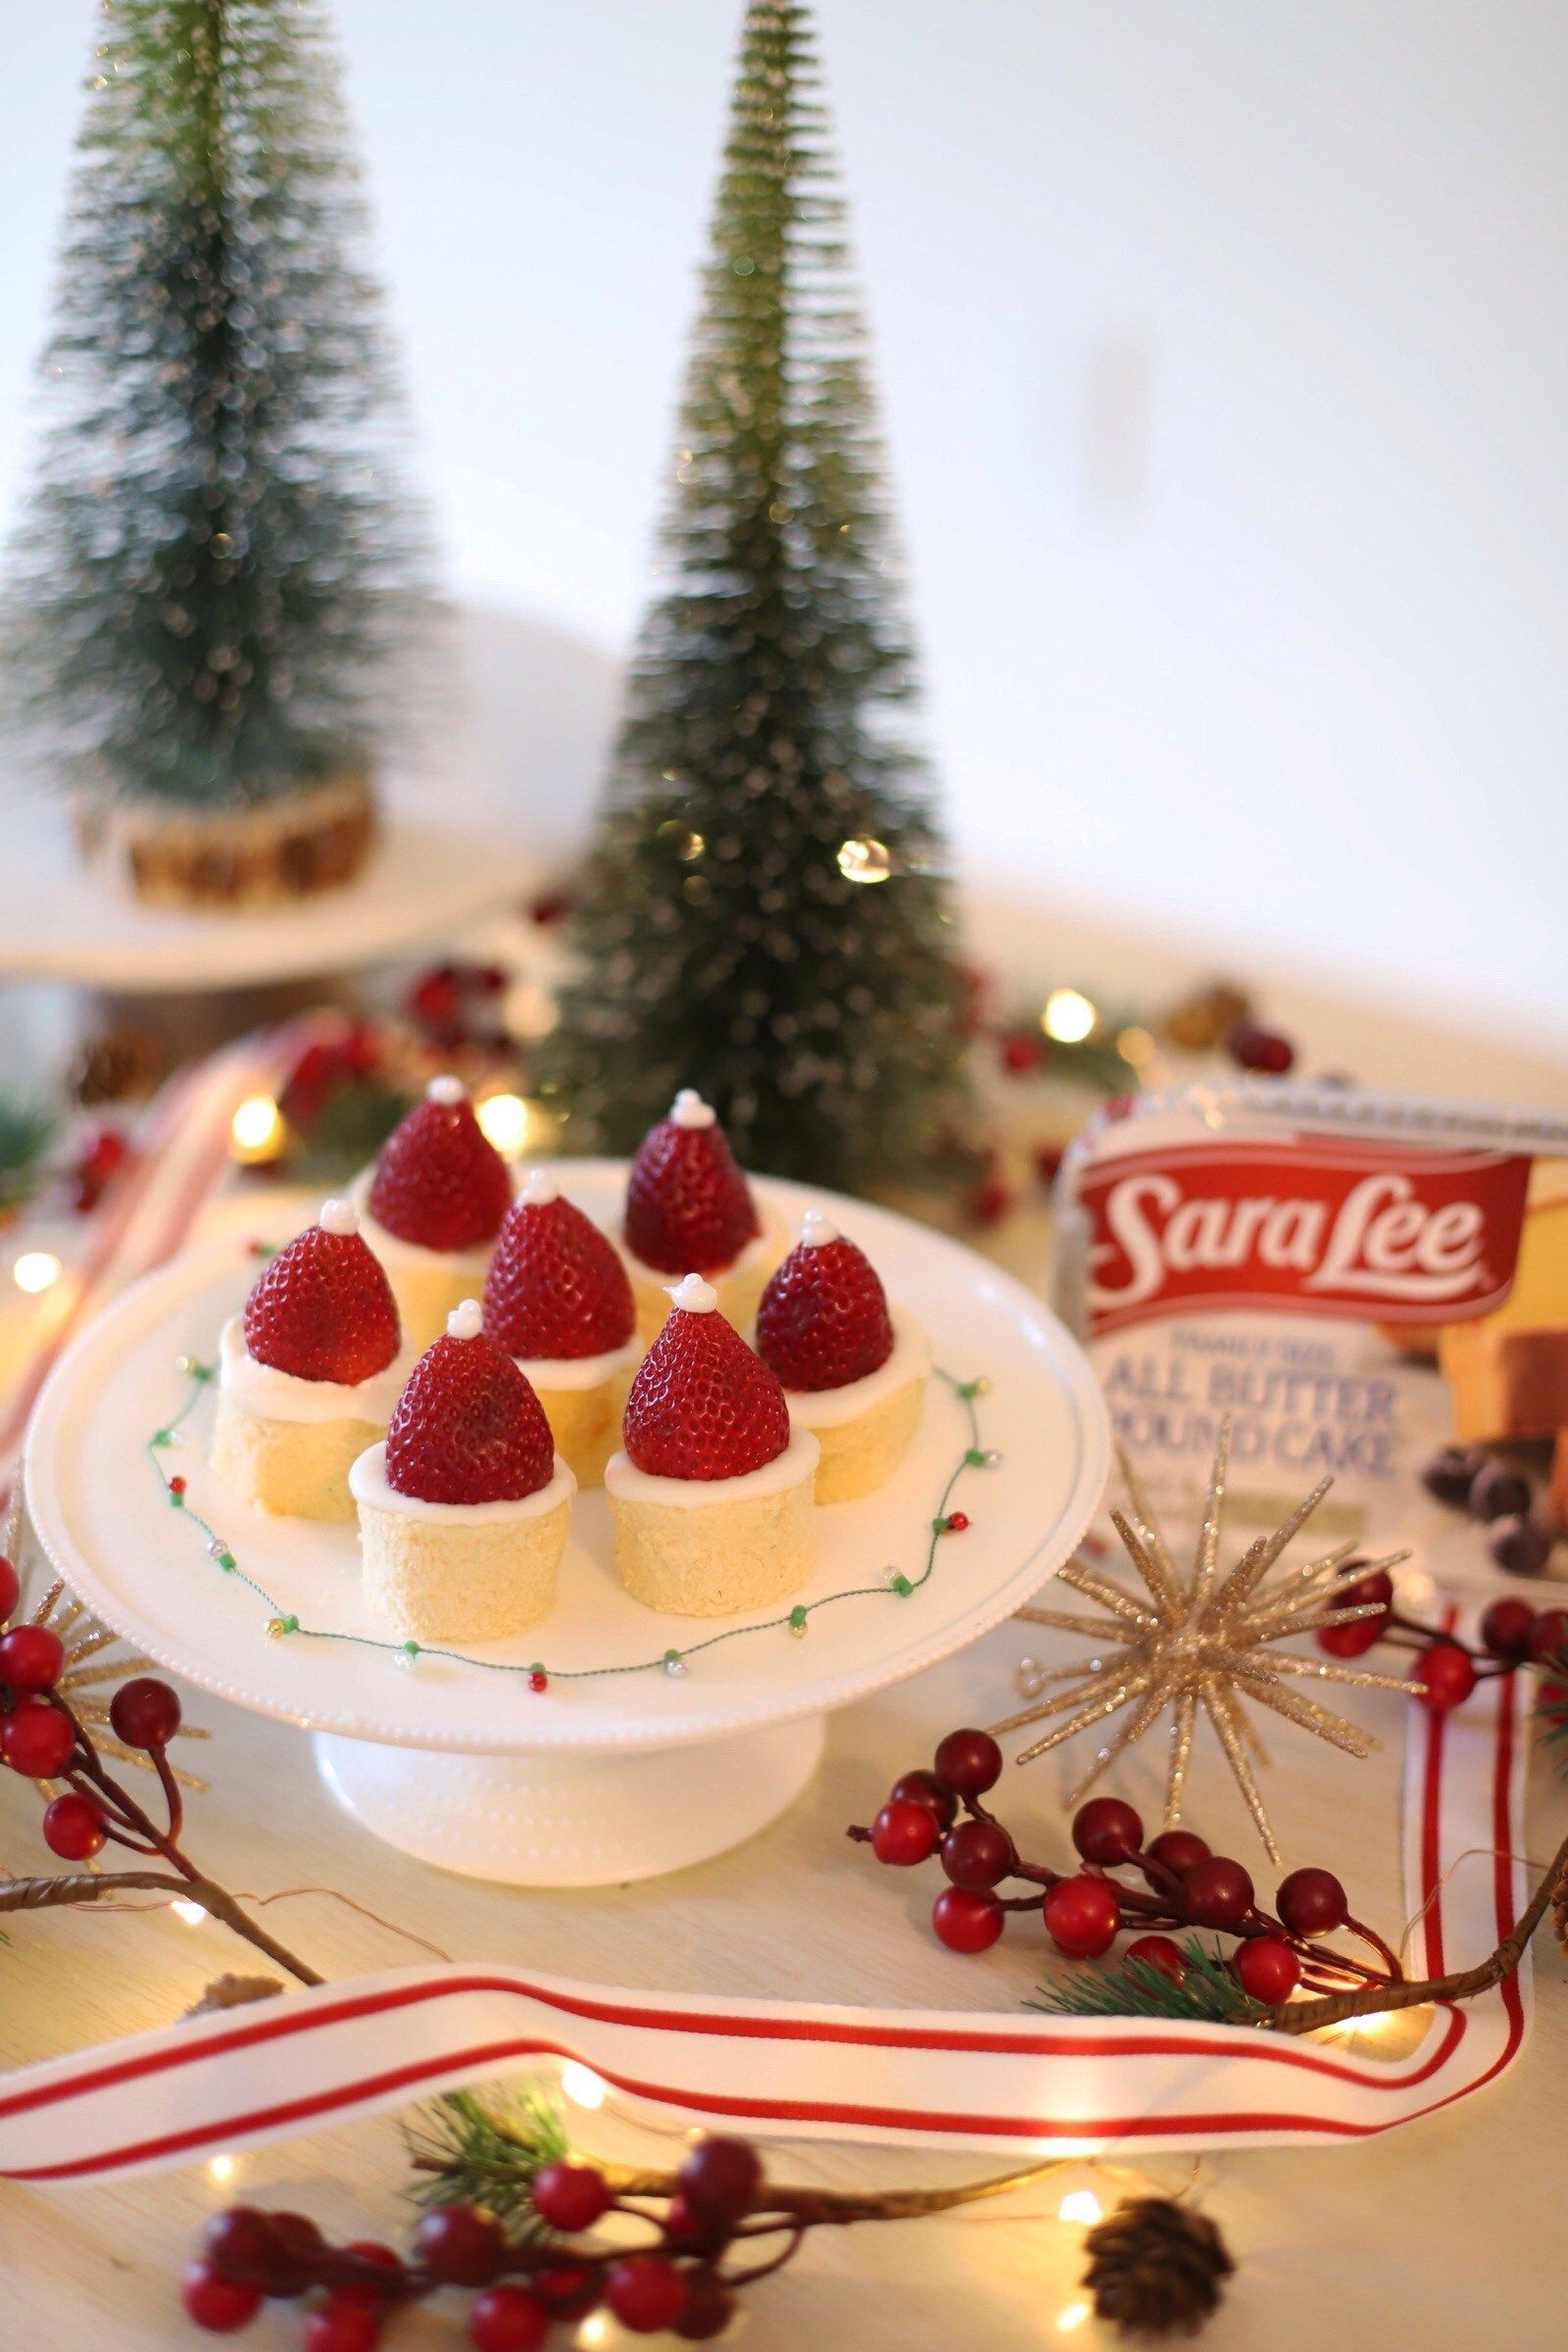 Holiday Dessert Ideas With Sara Lee Desserts All Butter Pound Cake